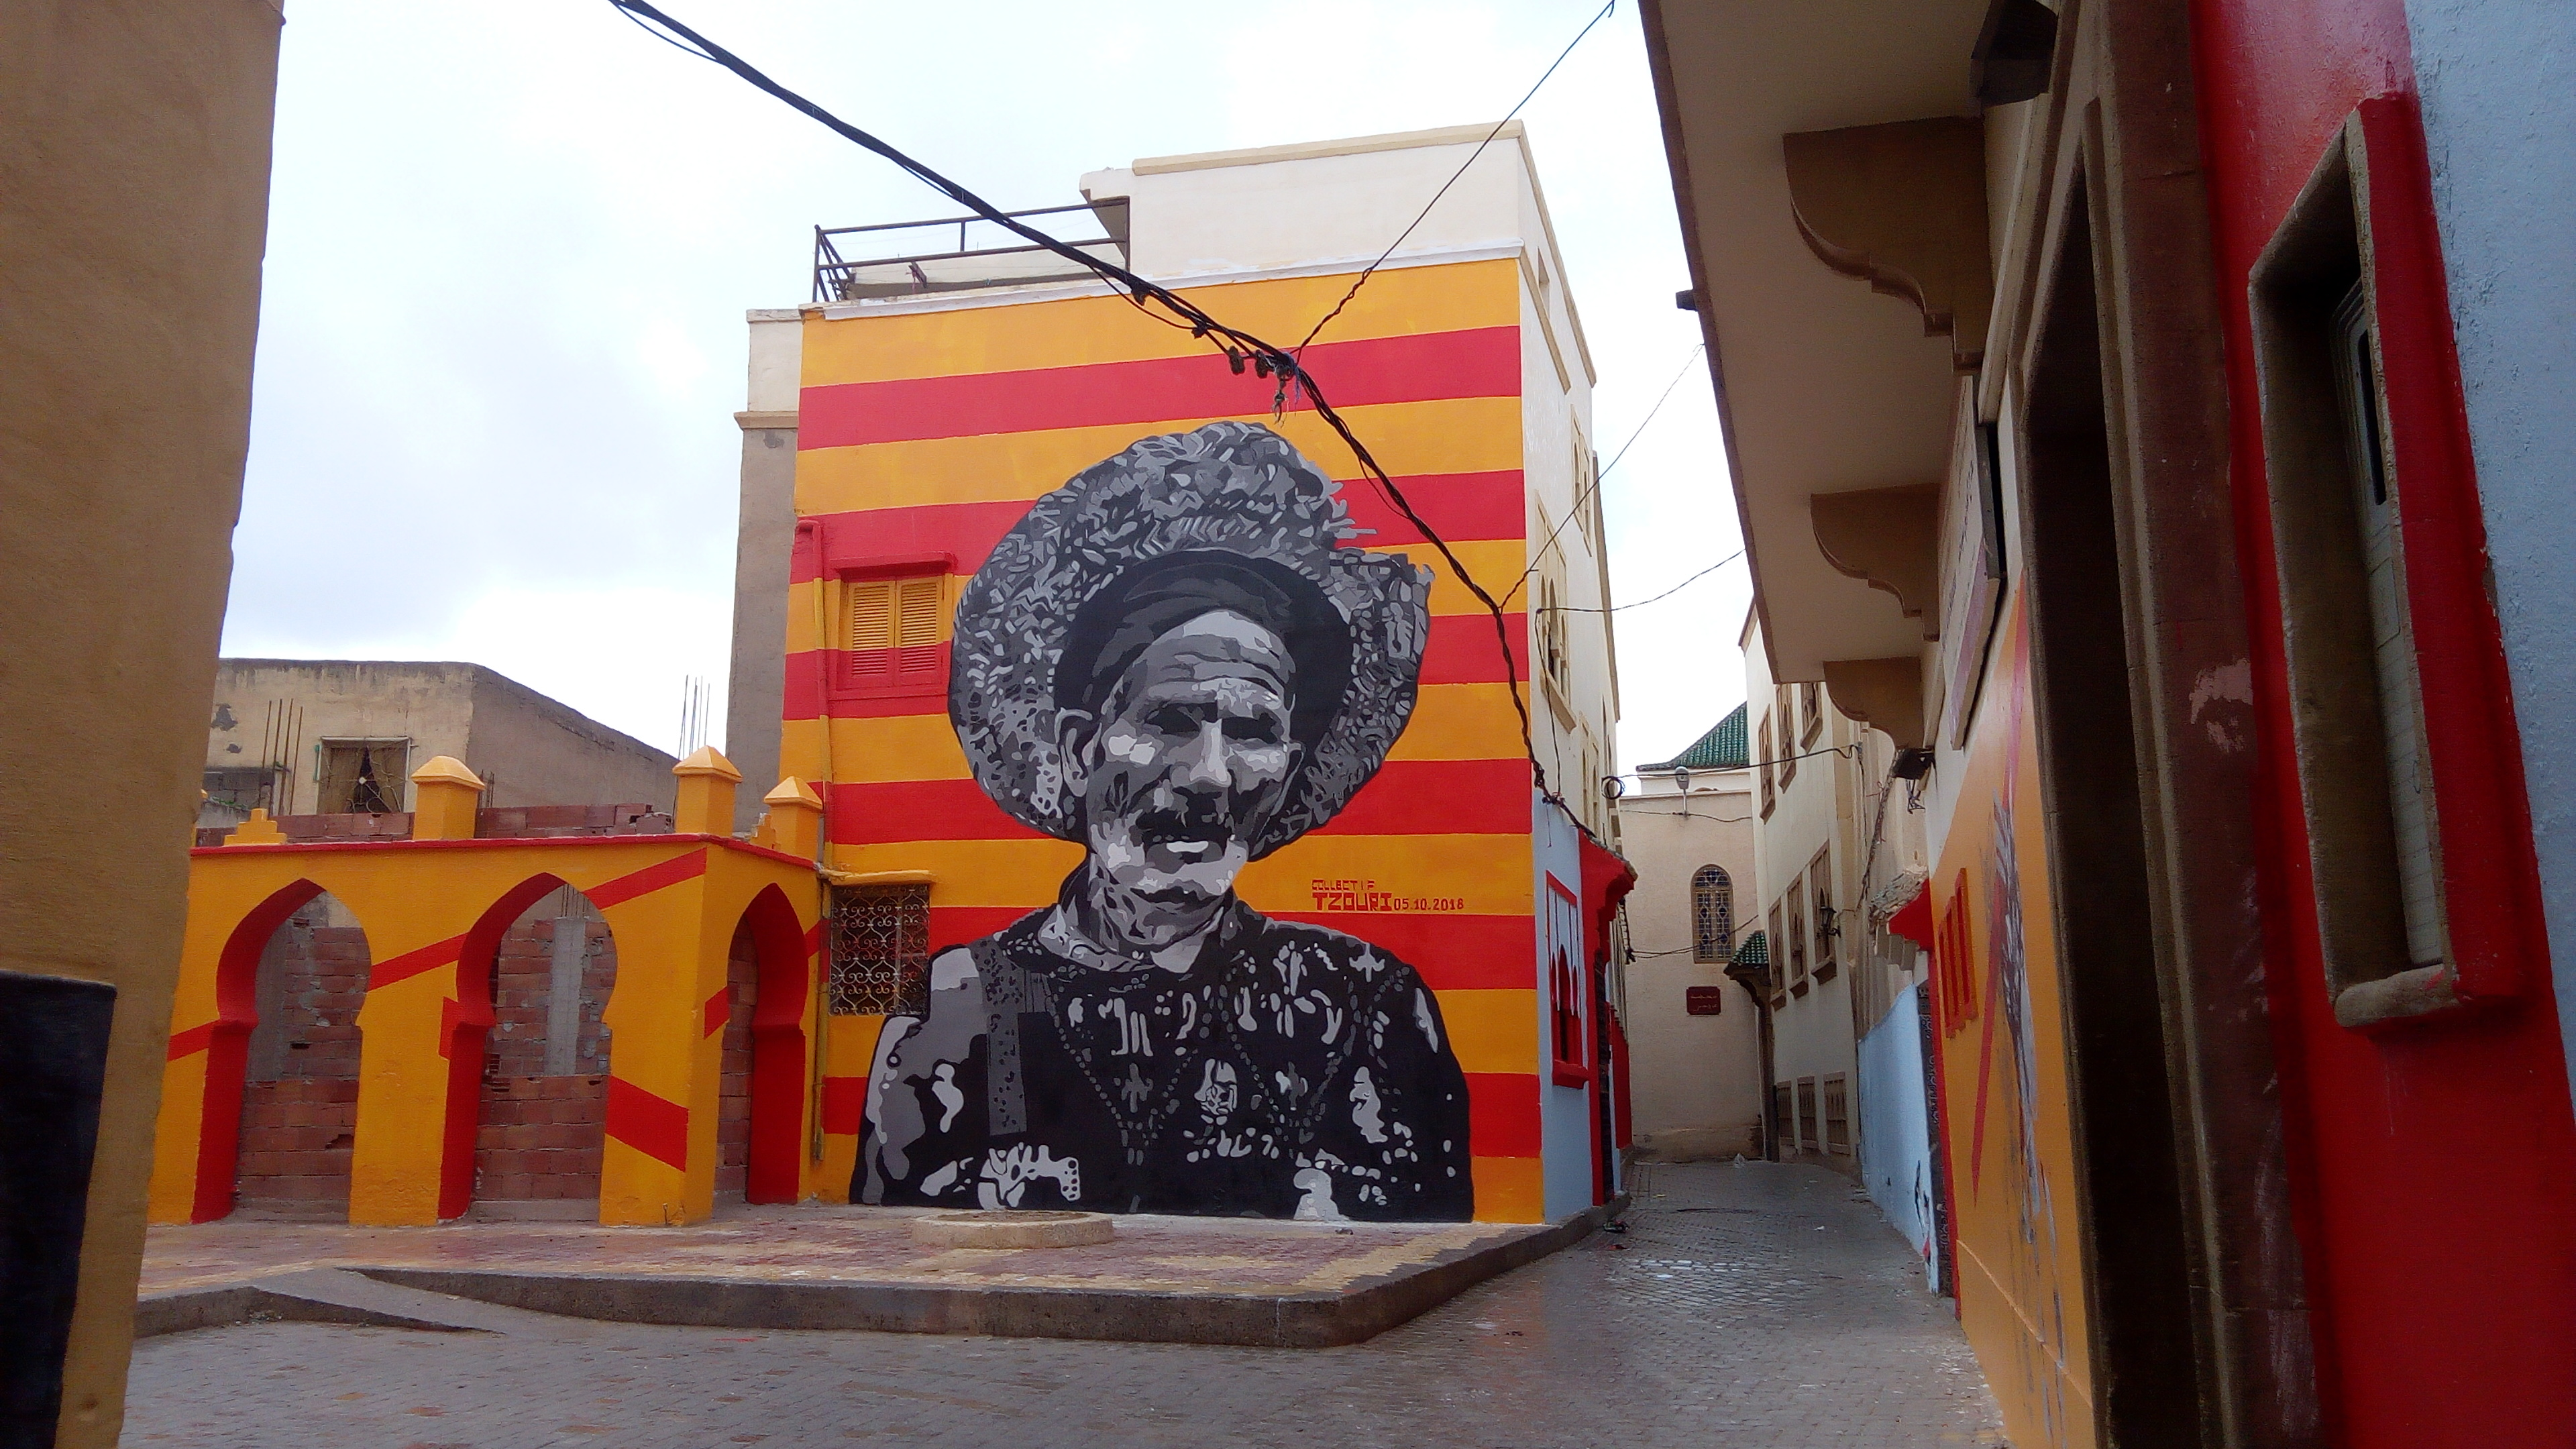 Collectif Tzouri, Mural in Oujda Old City, Morocco 2018. Photo by Chourouq Nasri